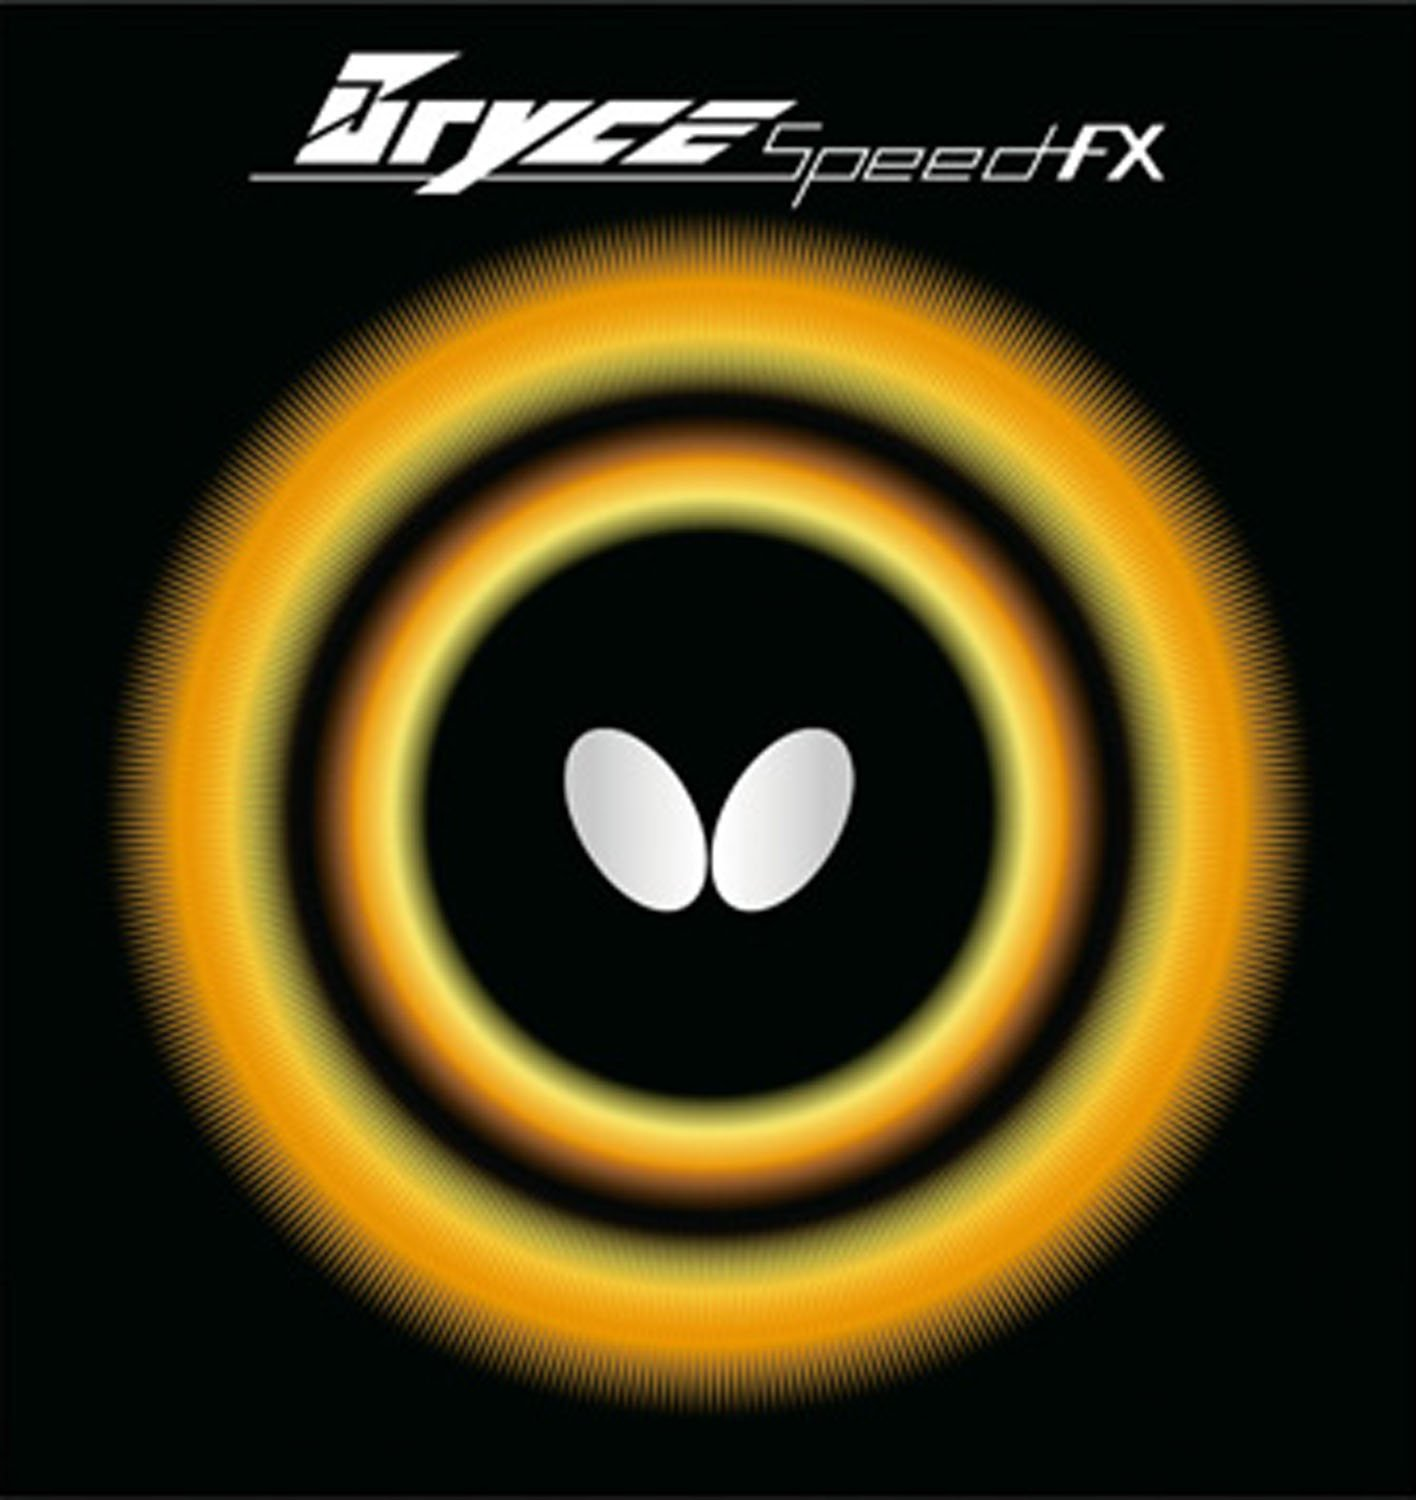 Butterfly Bryce Speed FX Rubber Sheet